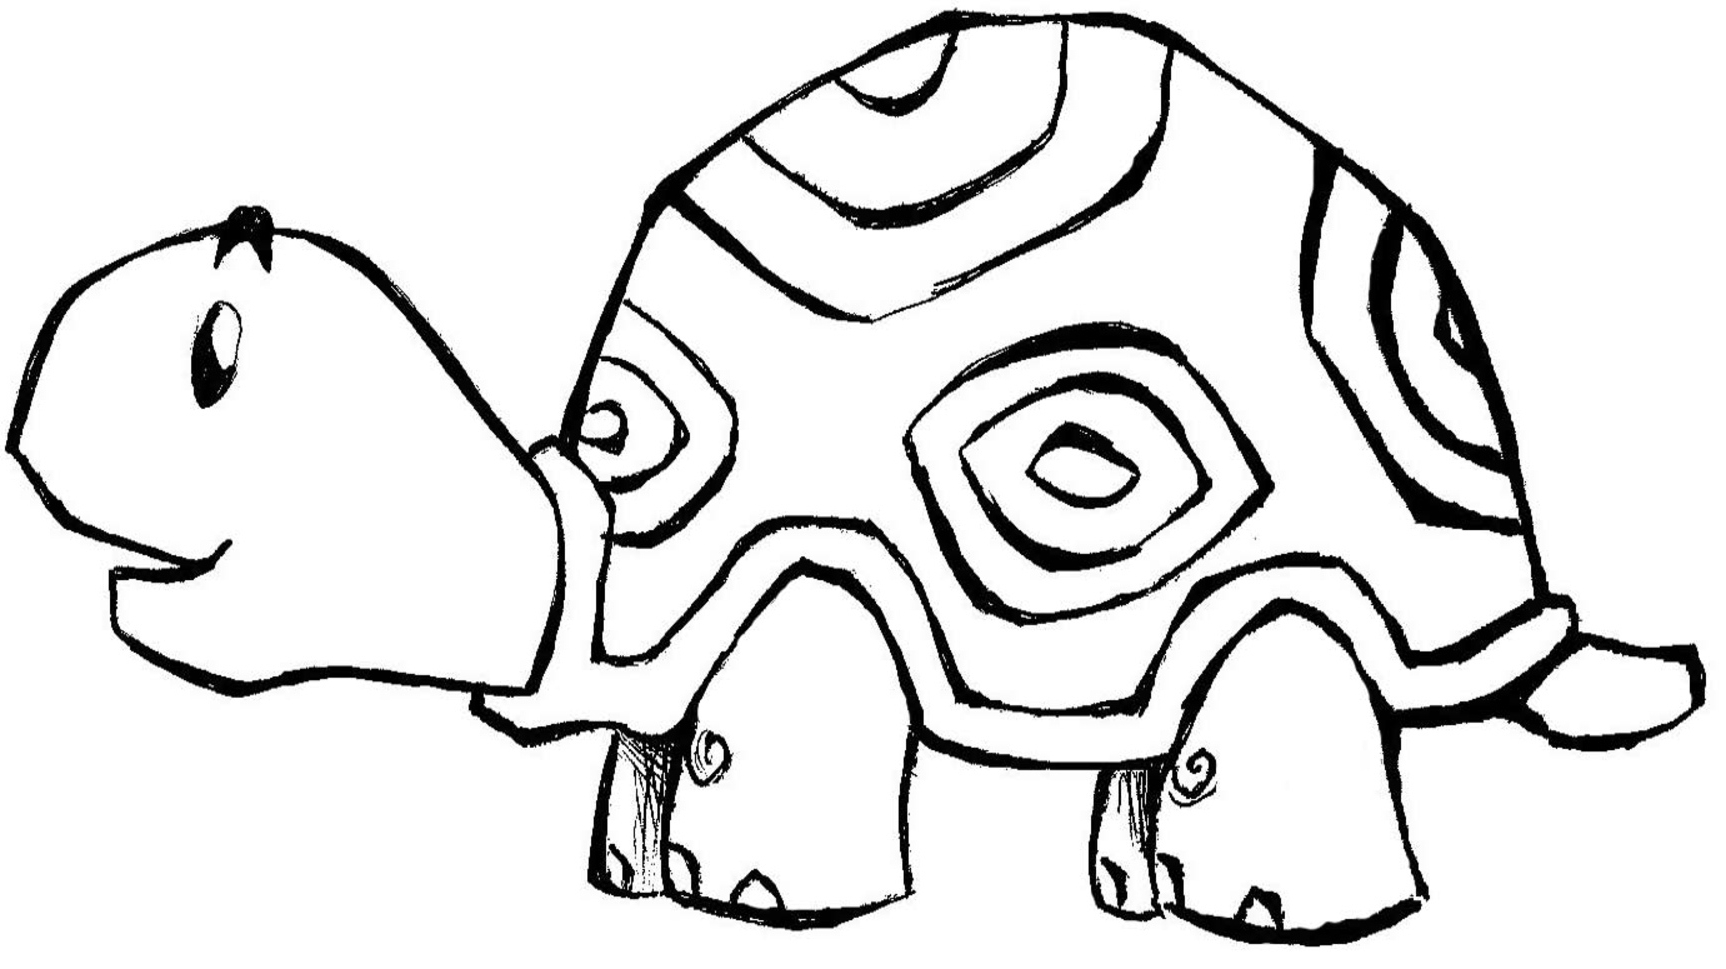 1726x969 Kids Printable Coloring Pages